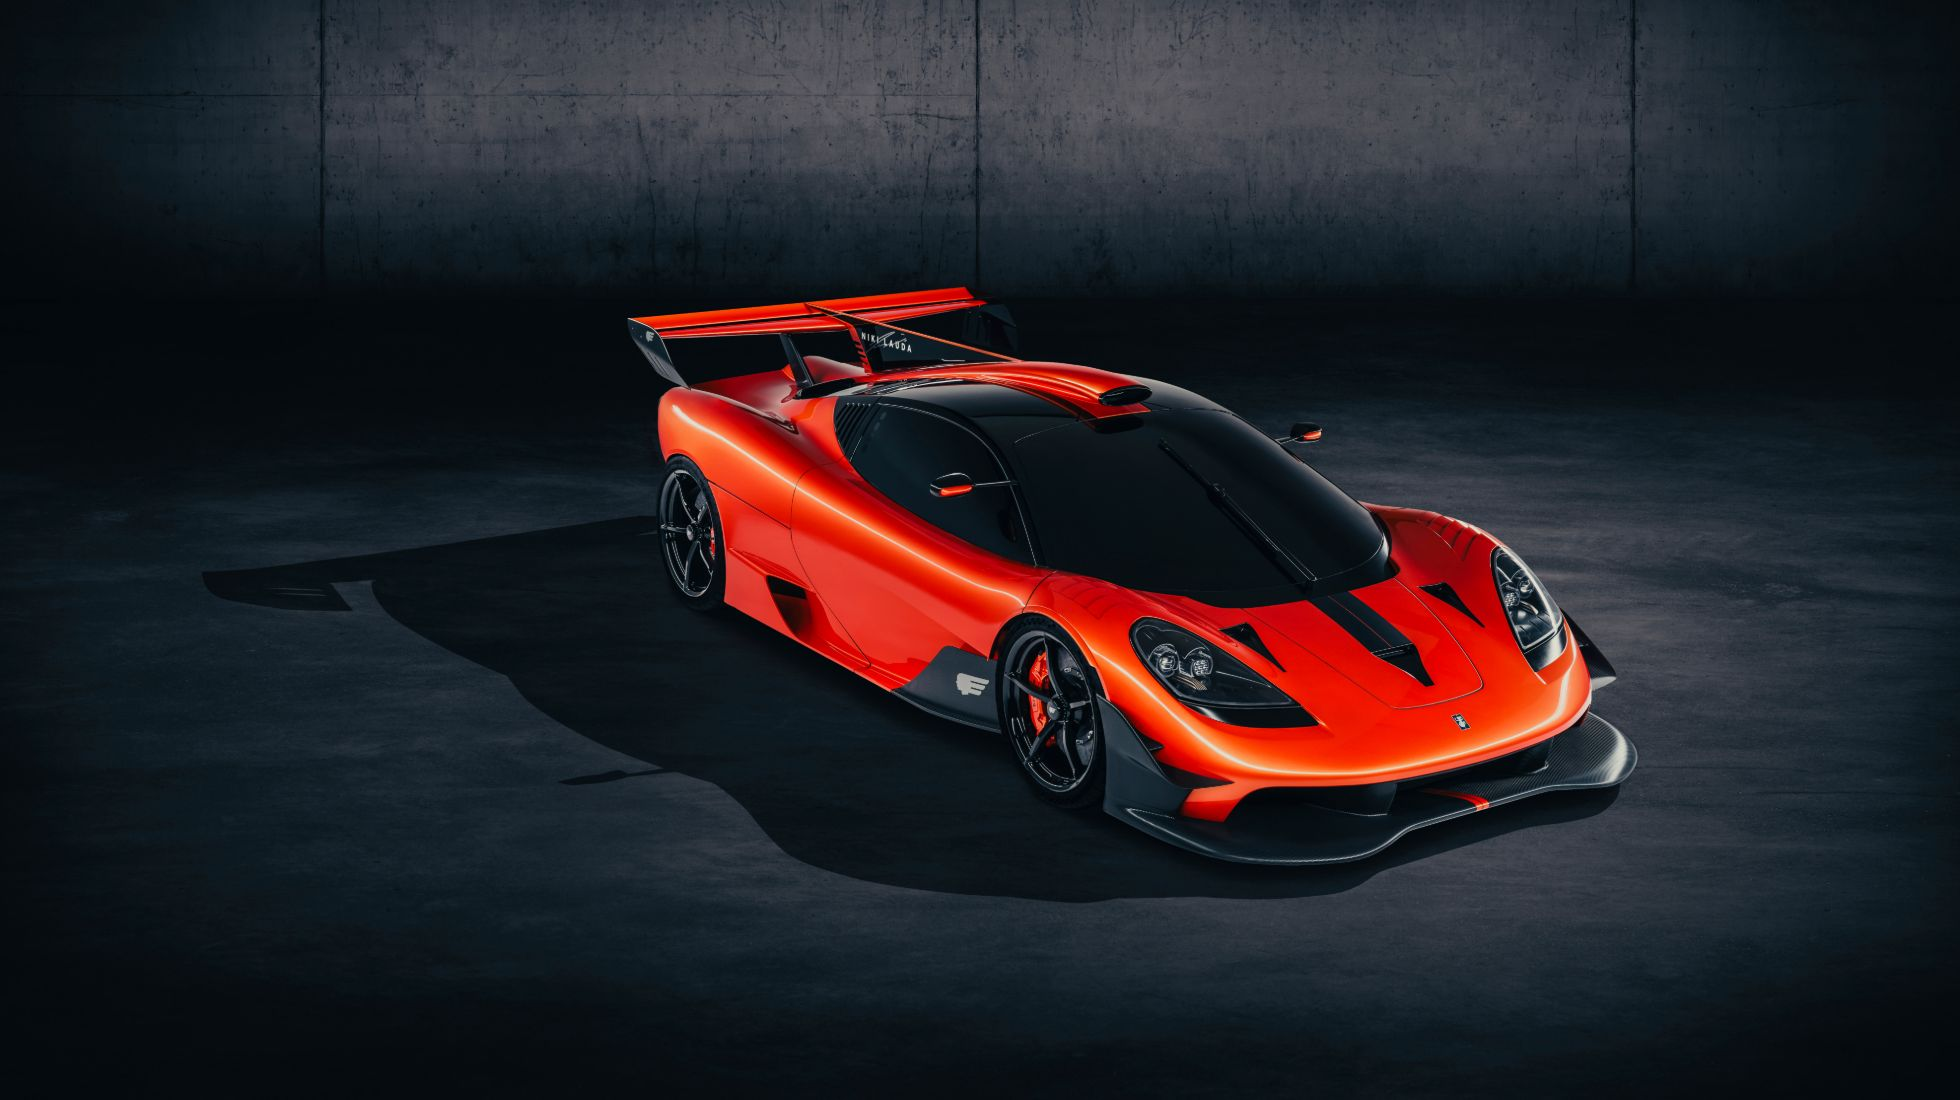 Gordon Murray Automotive's track-ready T.50s Niki Lauda unveiled